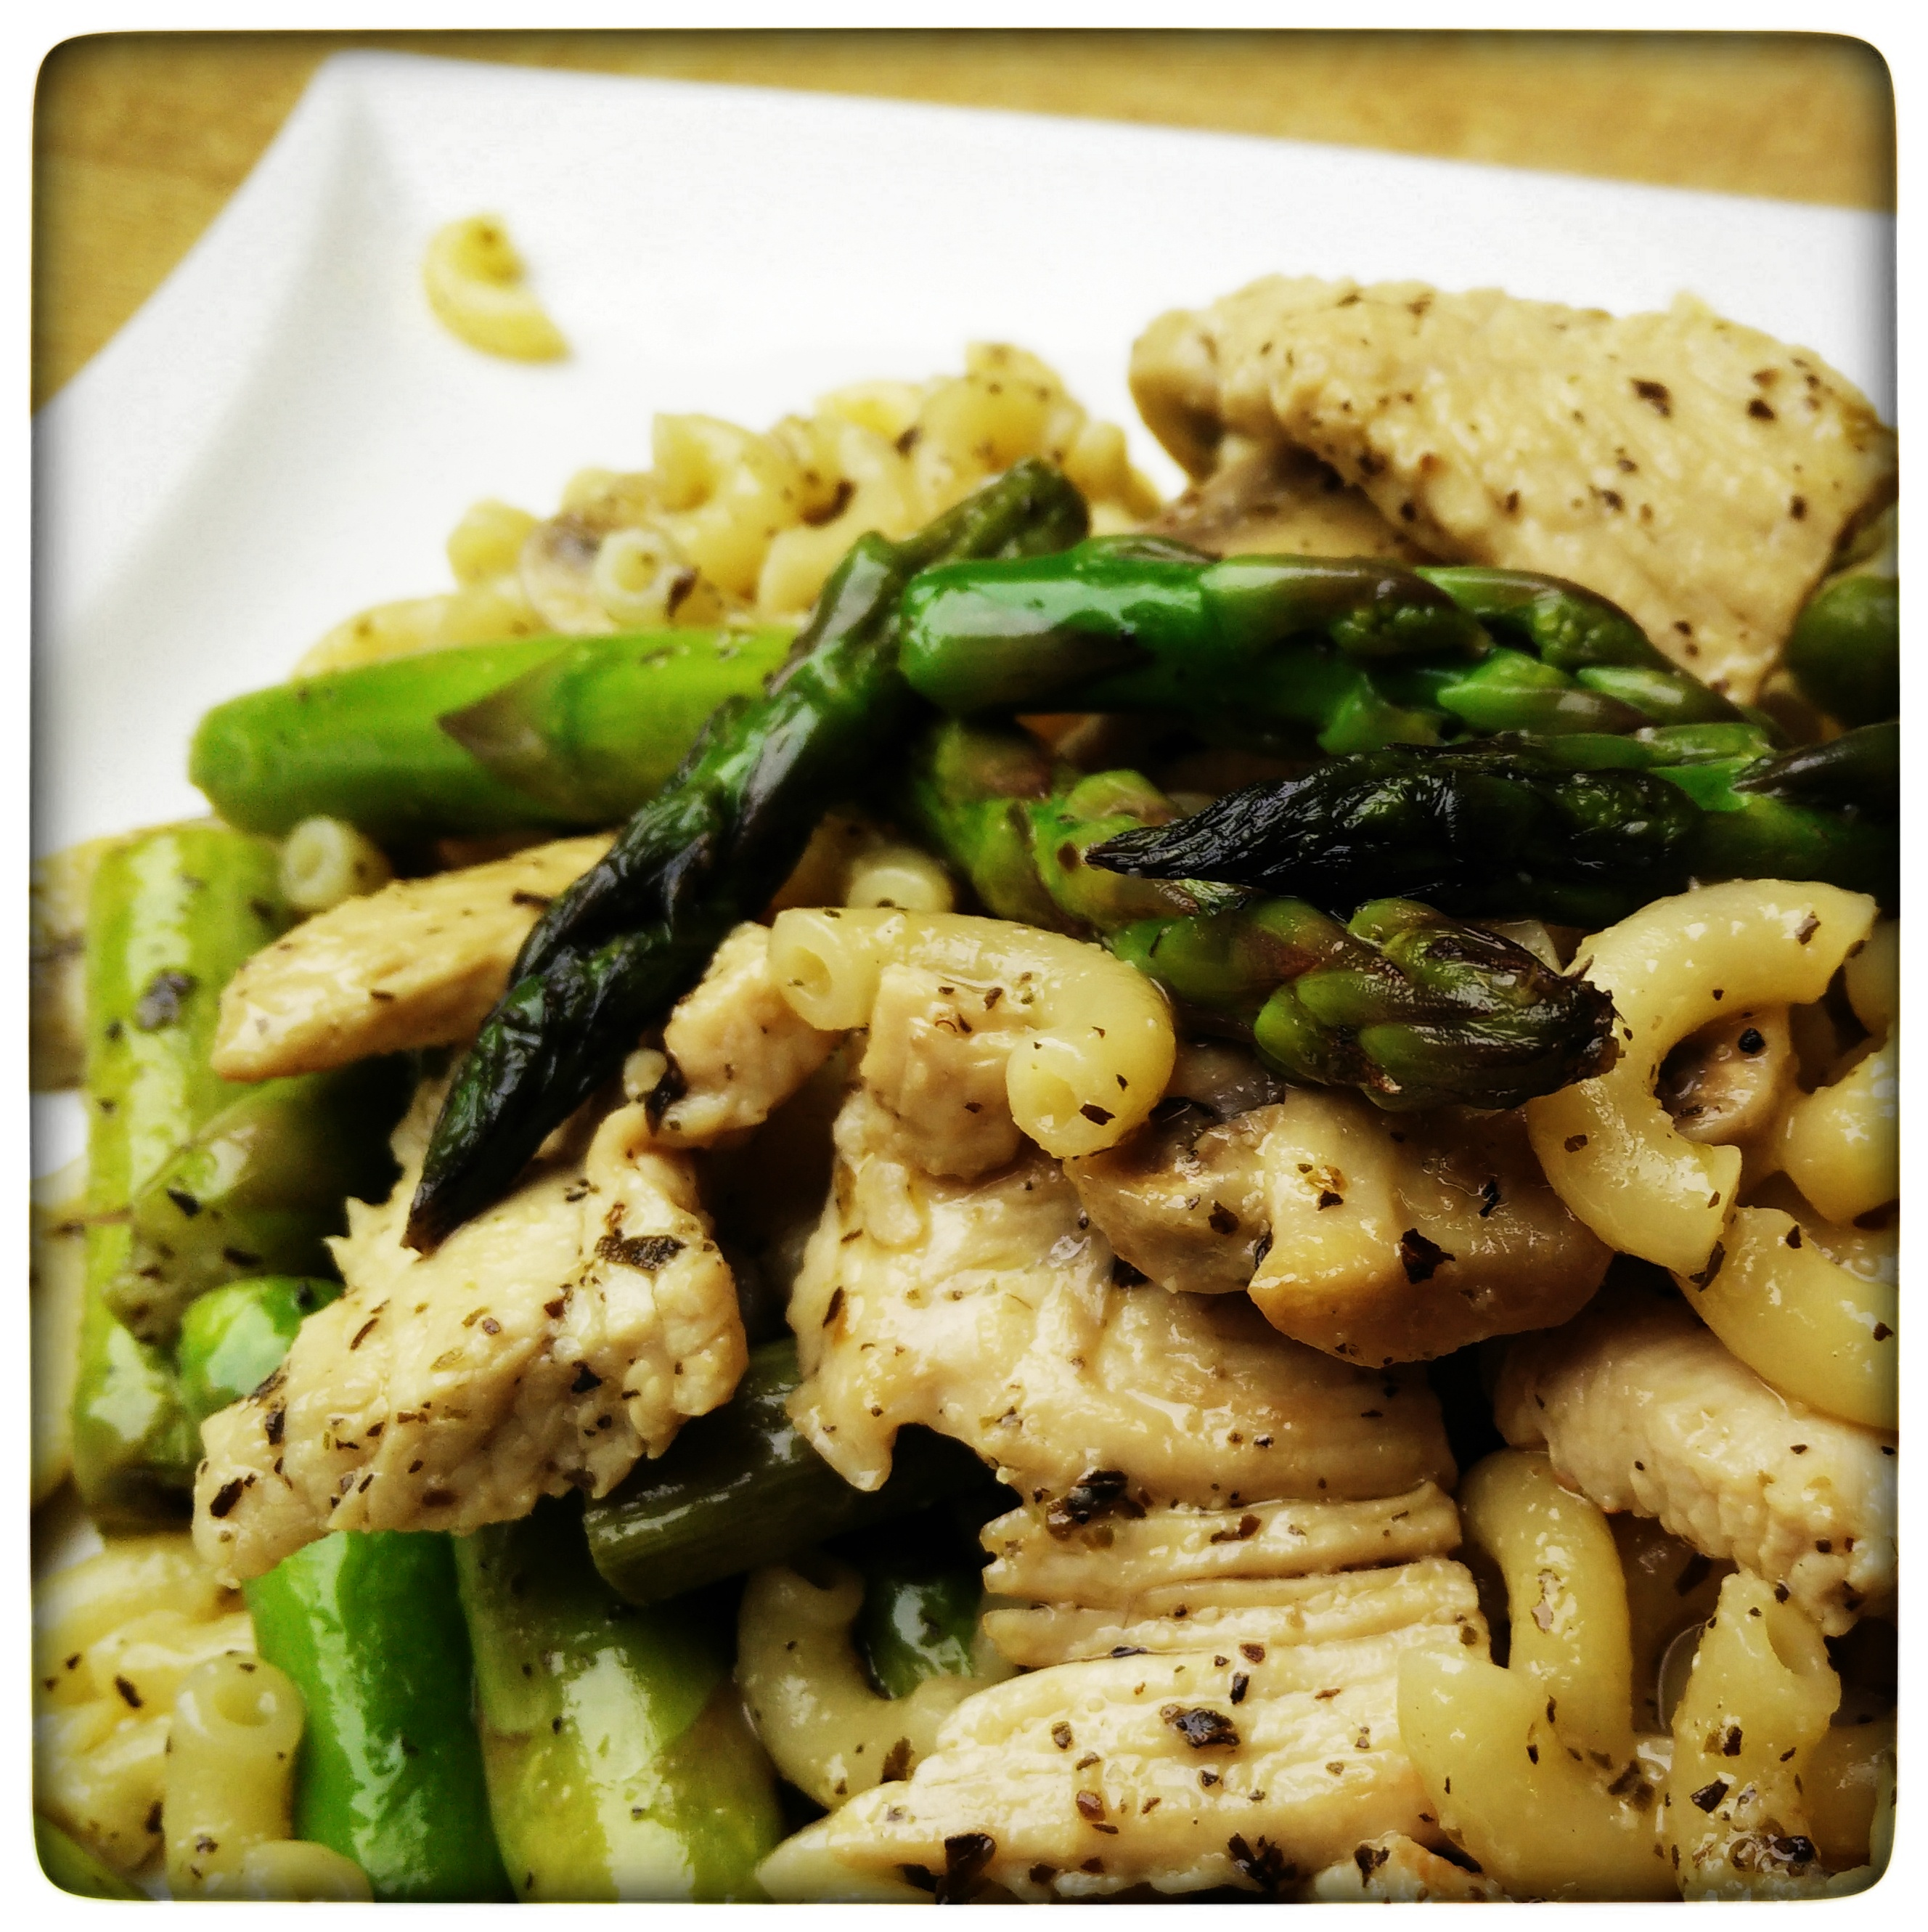 Chicken, Asparagus, and Mushroom Skillet